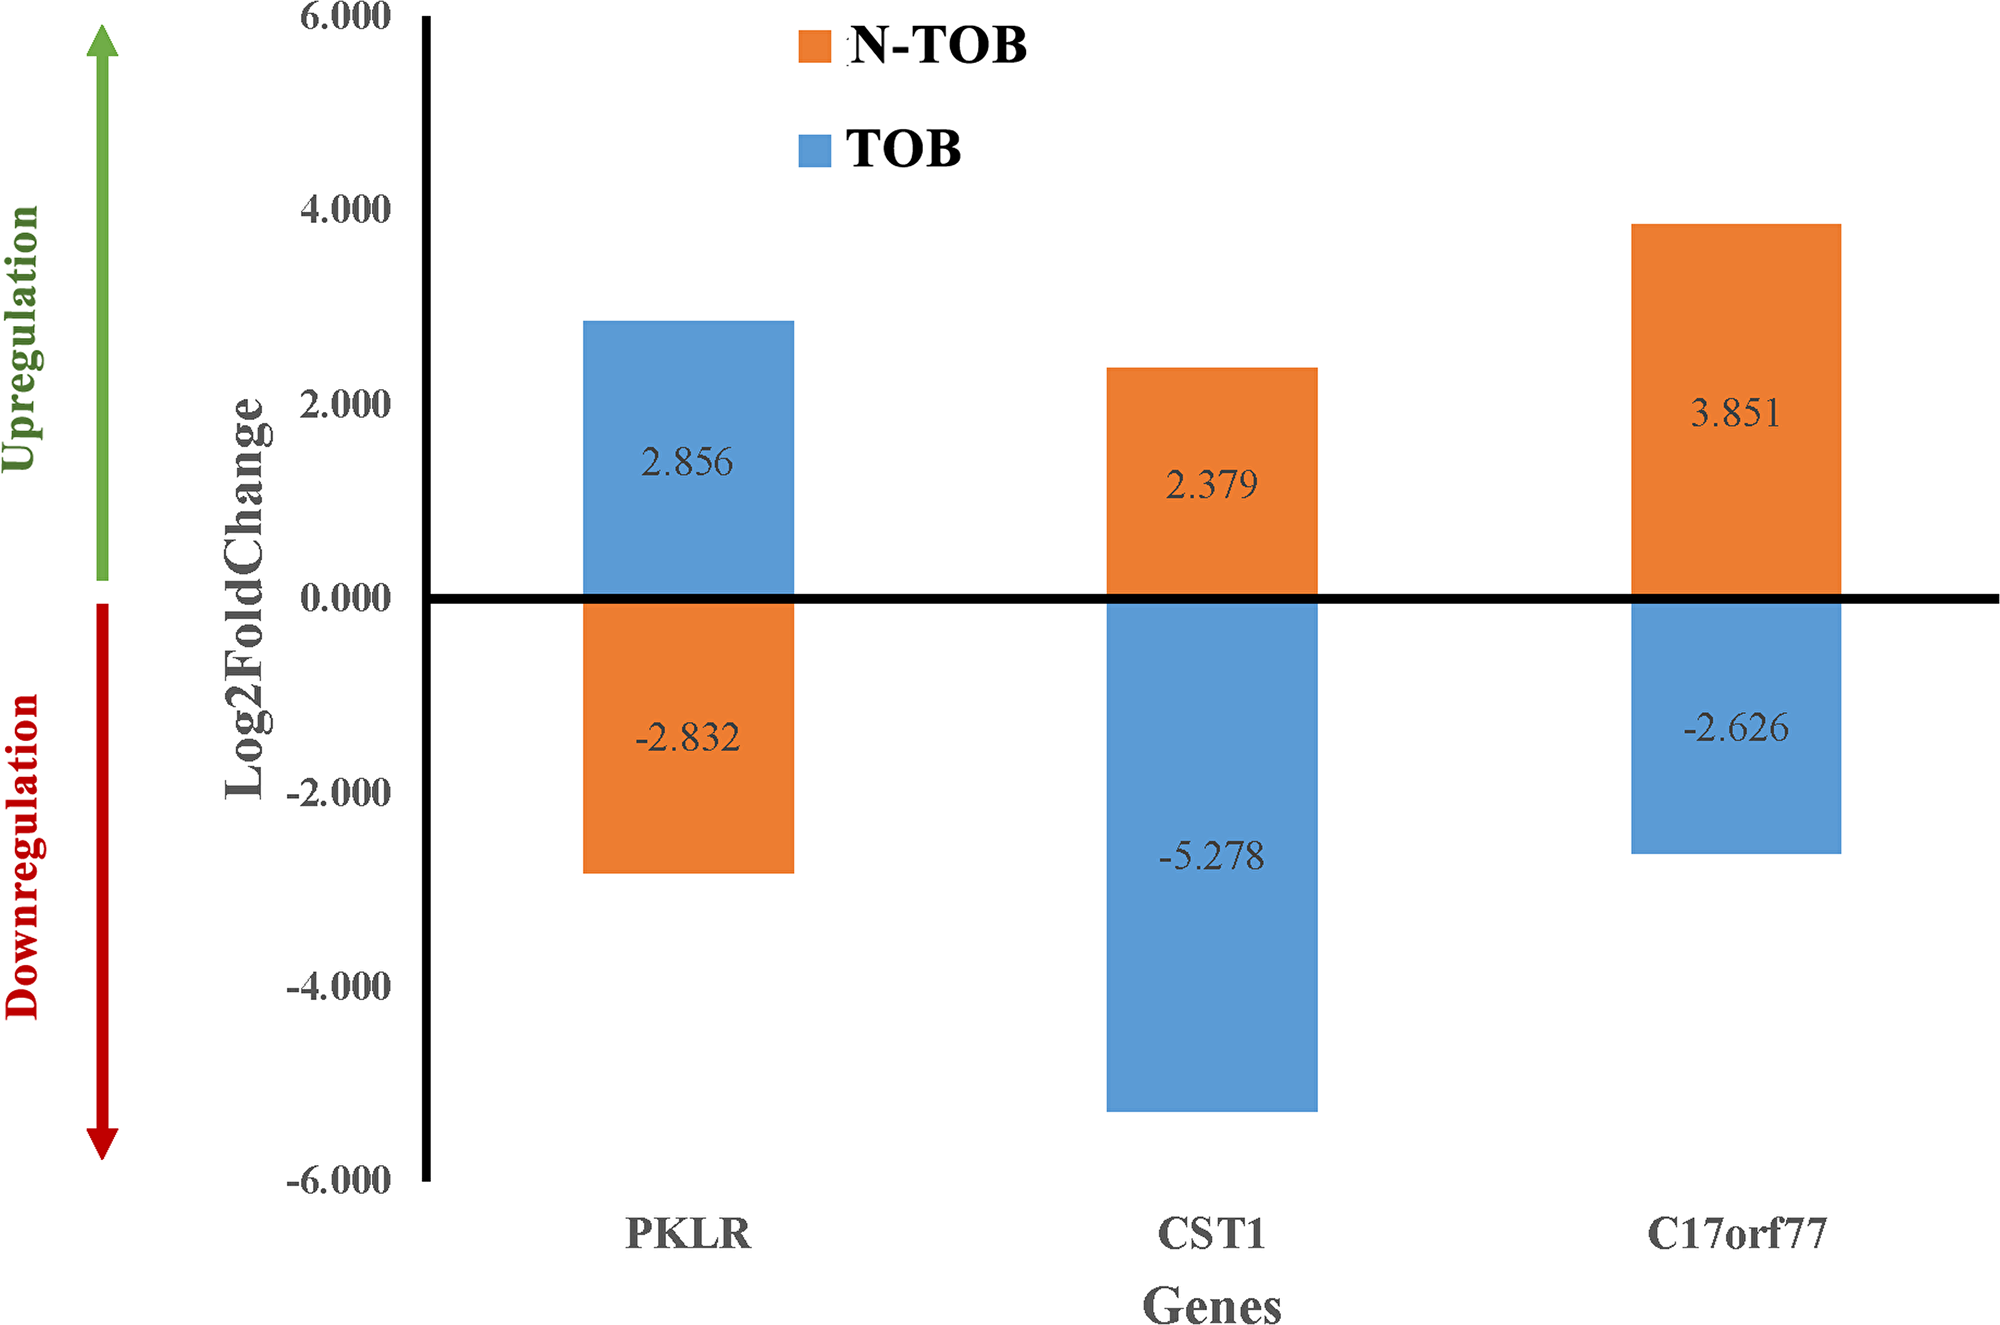 Differential gene expression pattern of key genes in both TOB and N-TOB tumors.